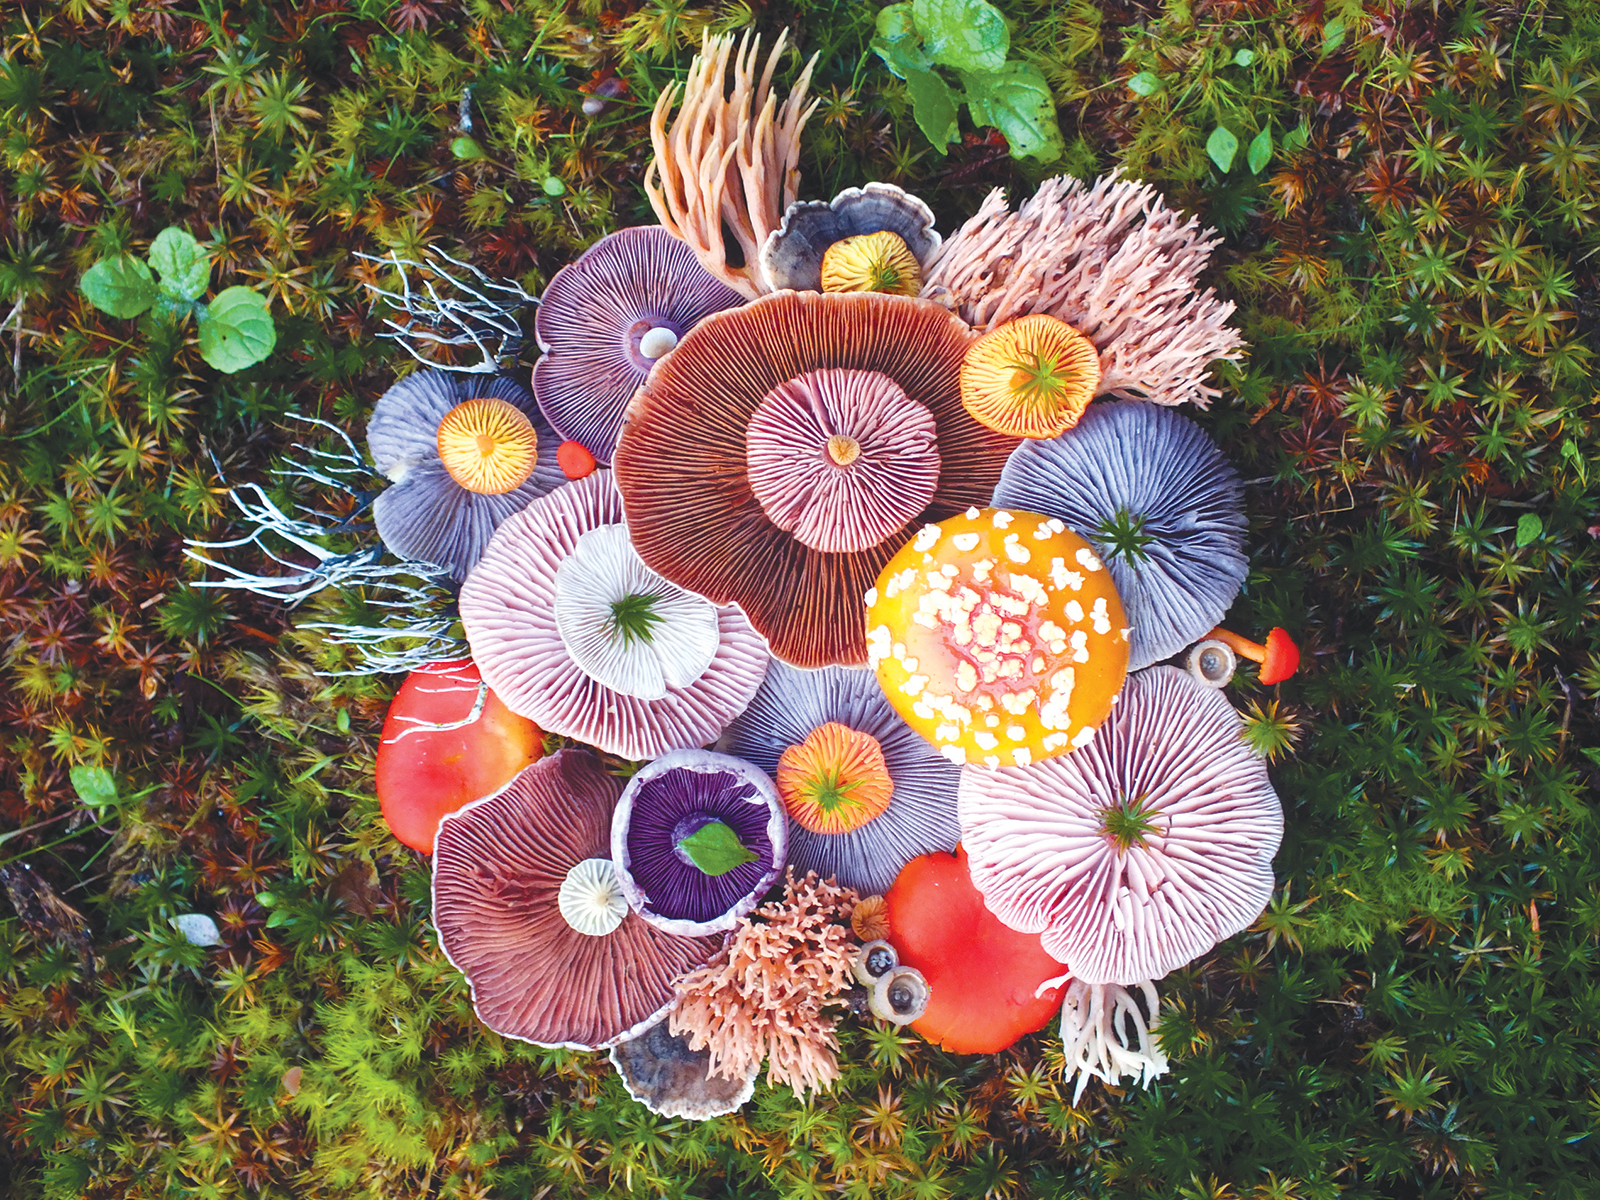 Wild Mushrooms Become Art in These Gorgeous Photos